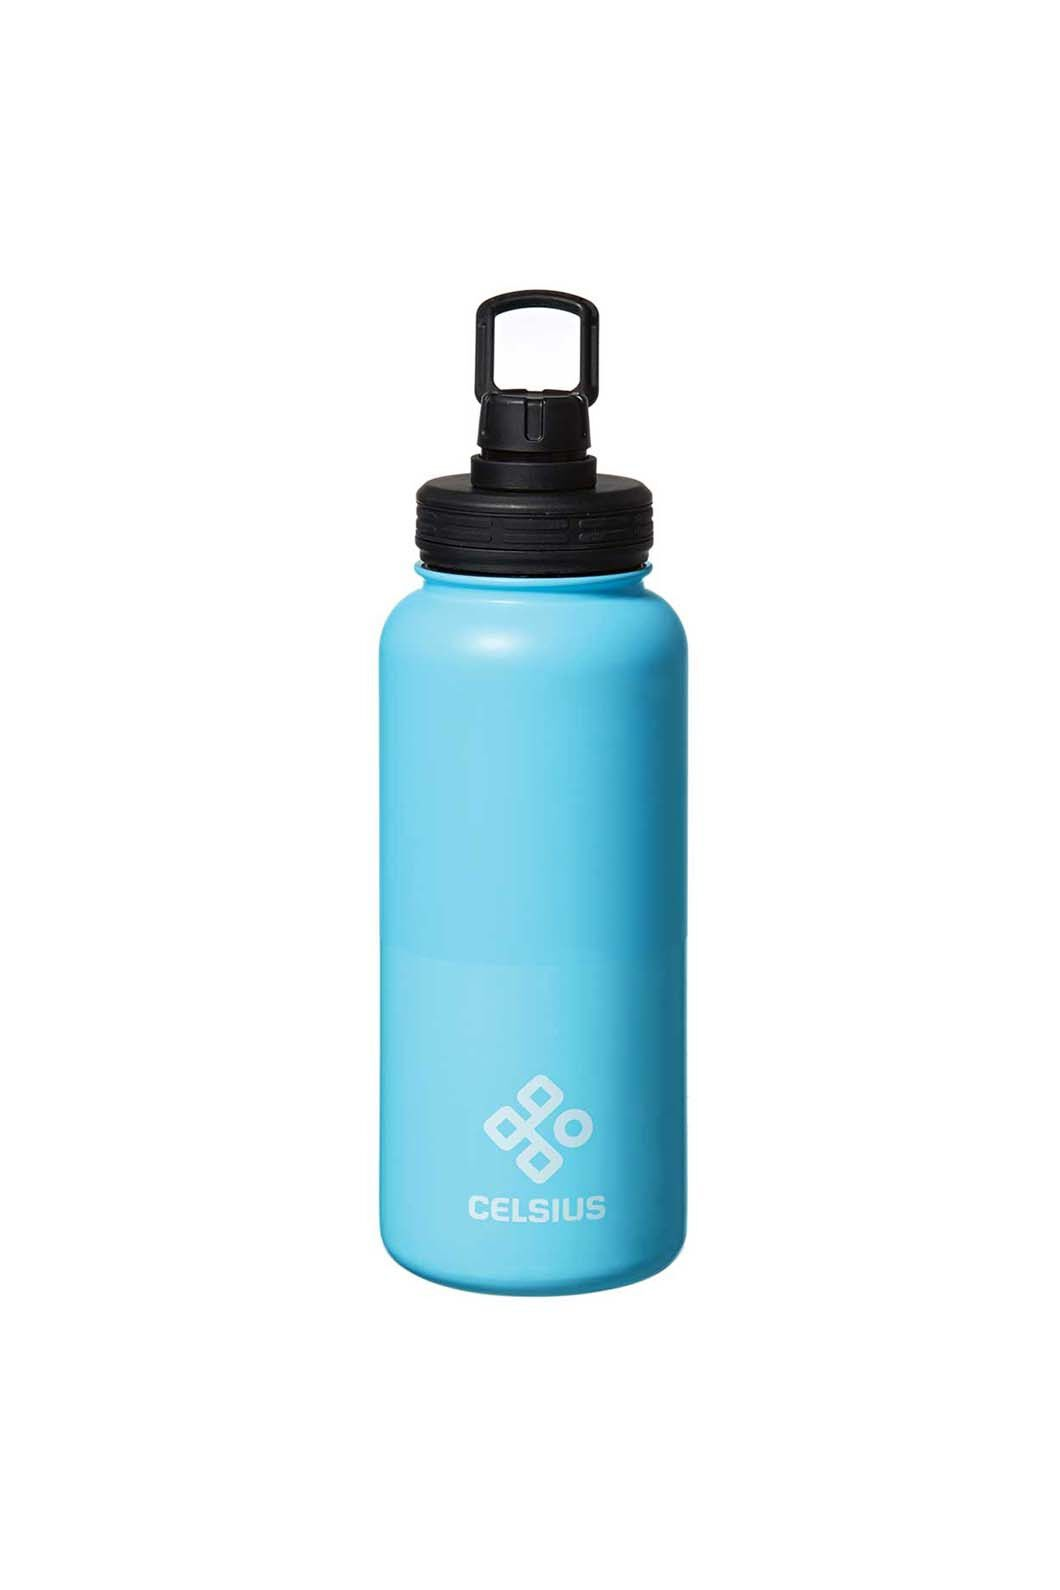 Celsius Stainless Insulated 950ml Water Bottle, Blue, hi-res